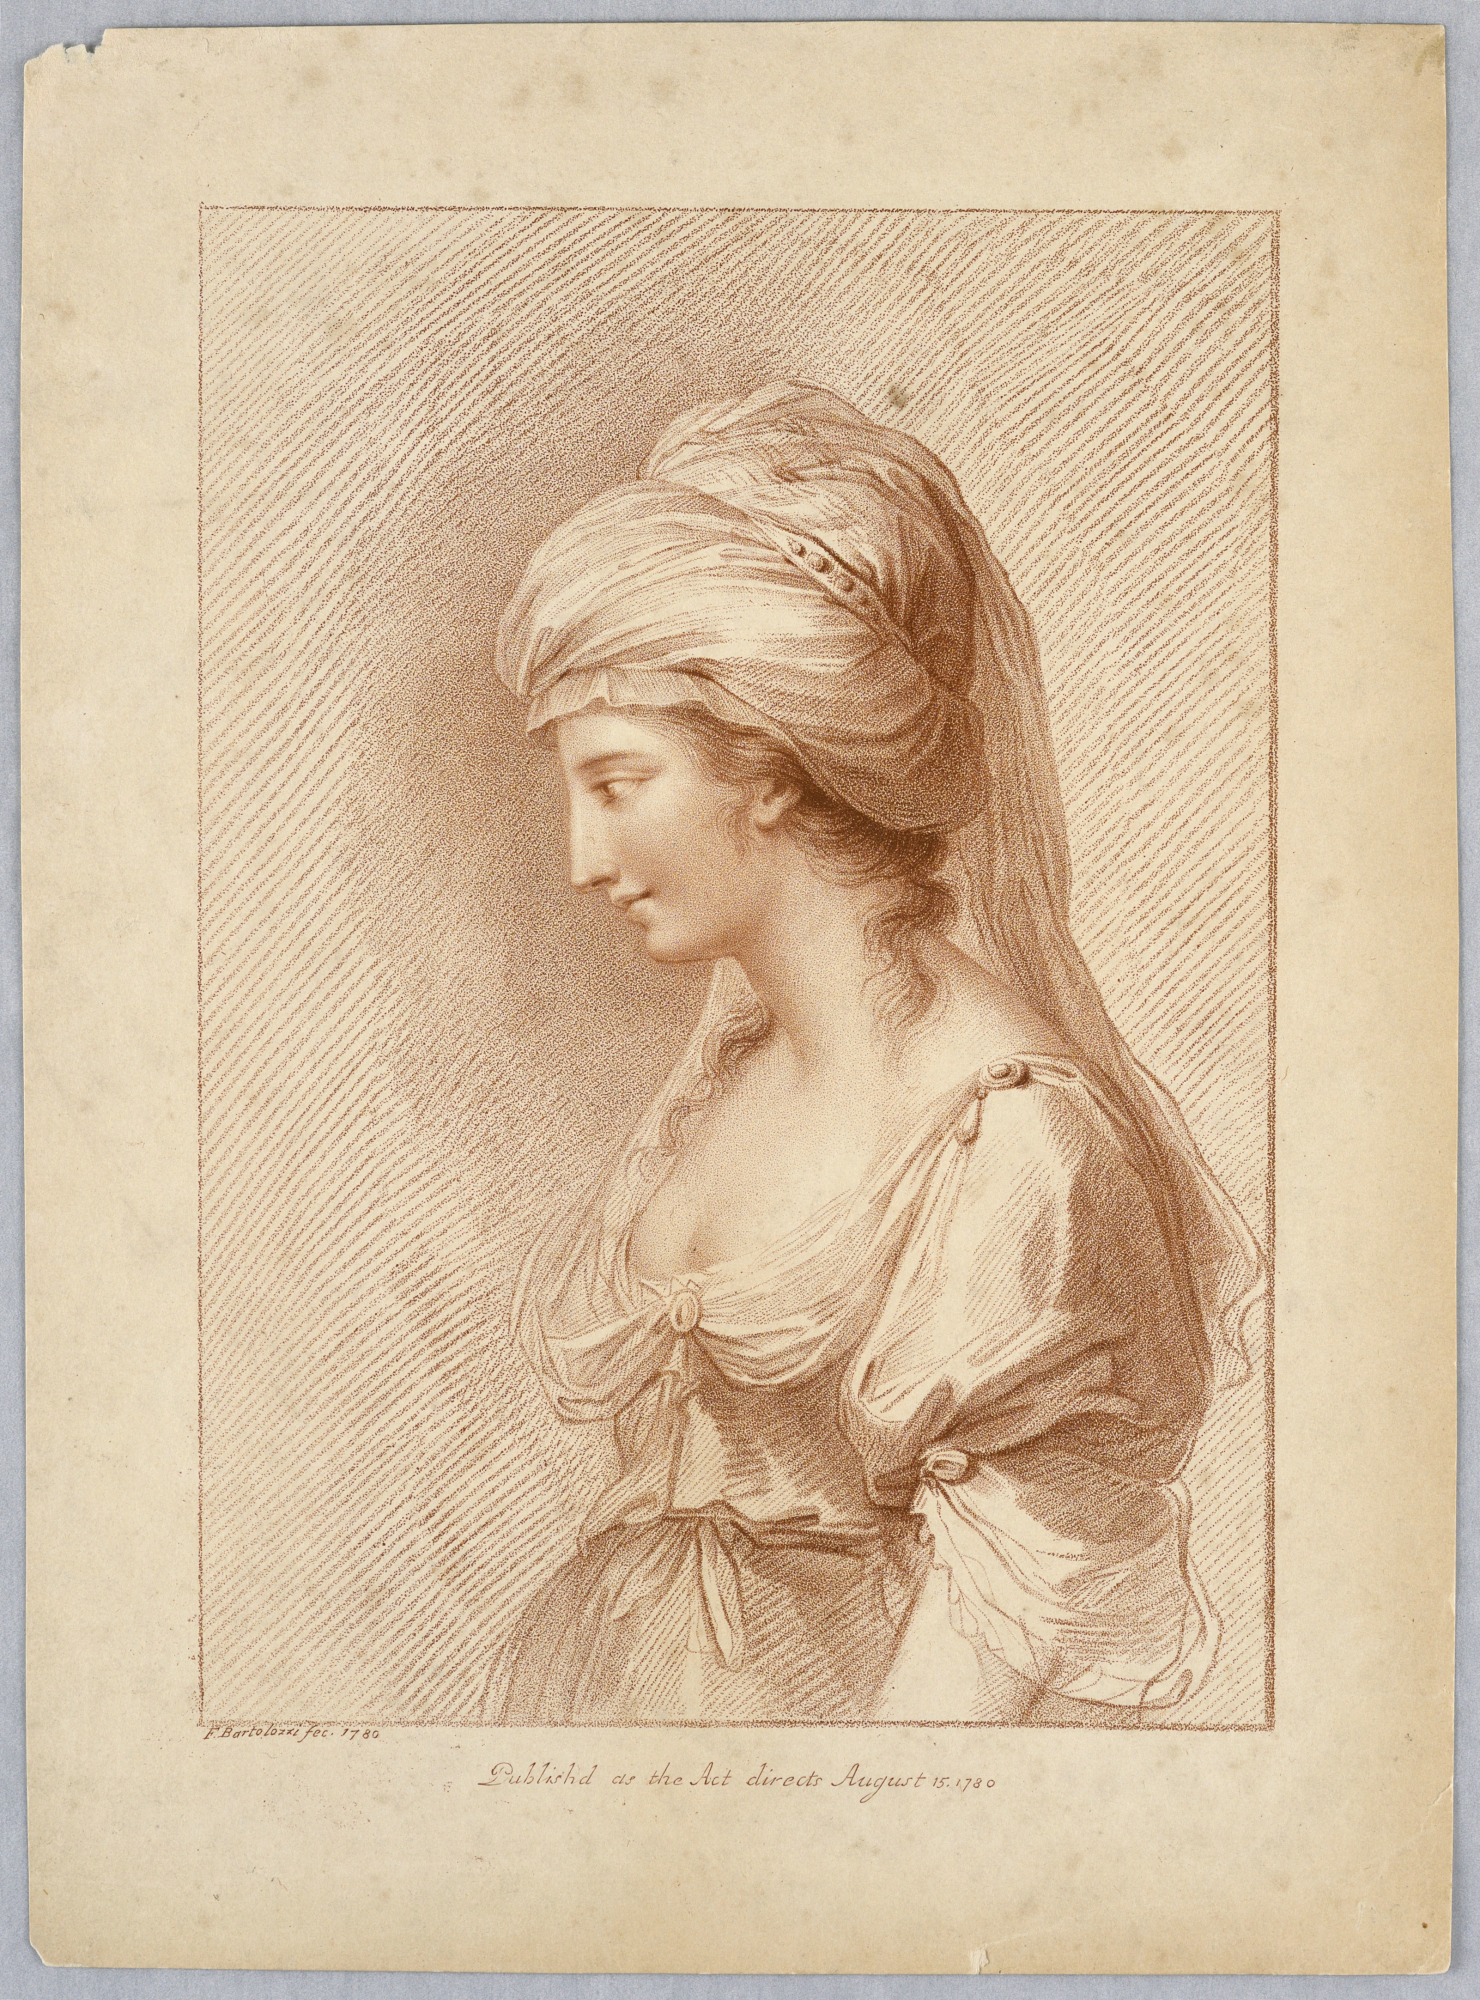 Portrait of a Lady (The Grecian Daughter)